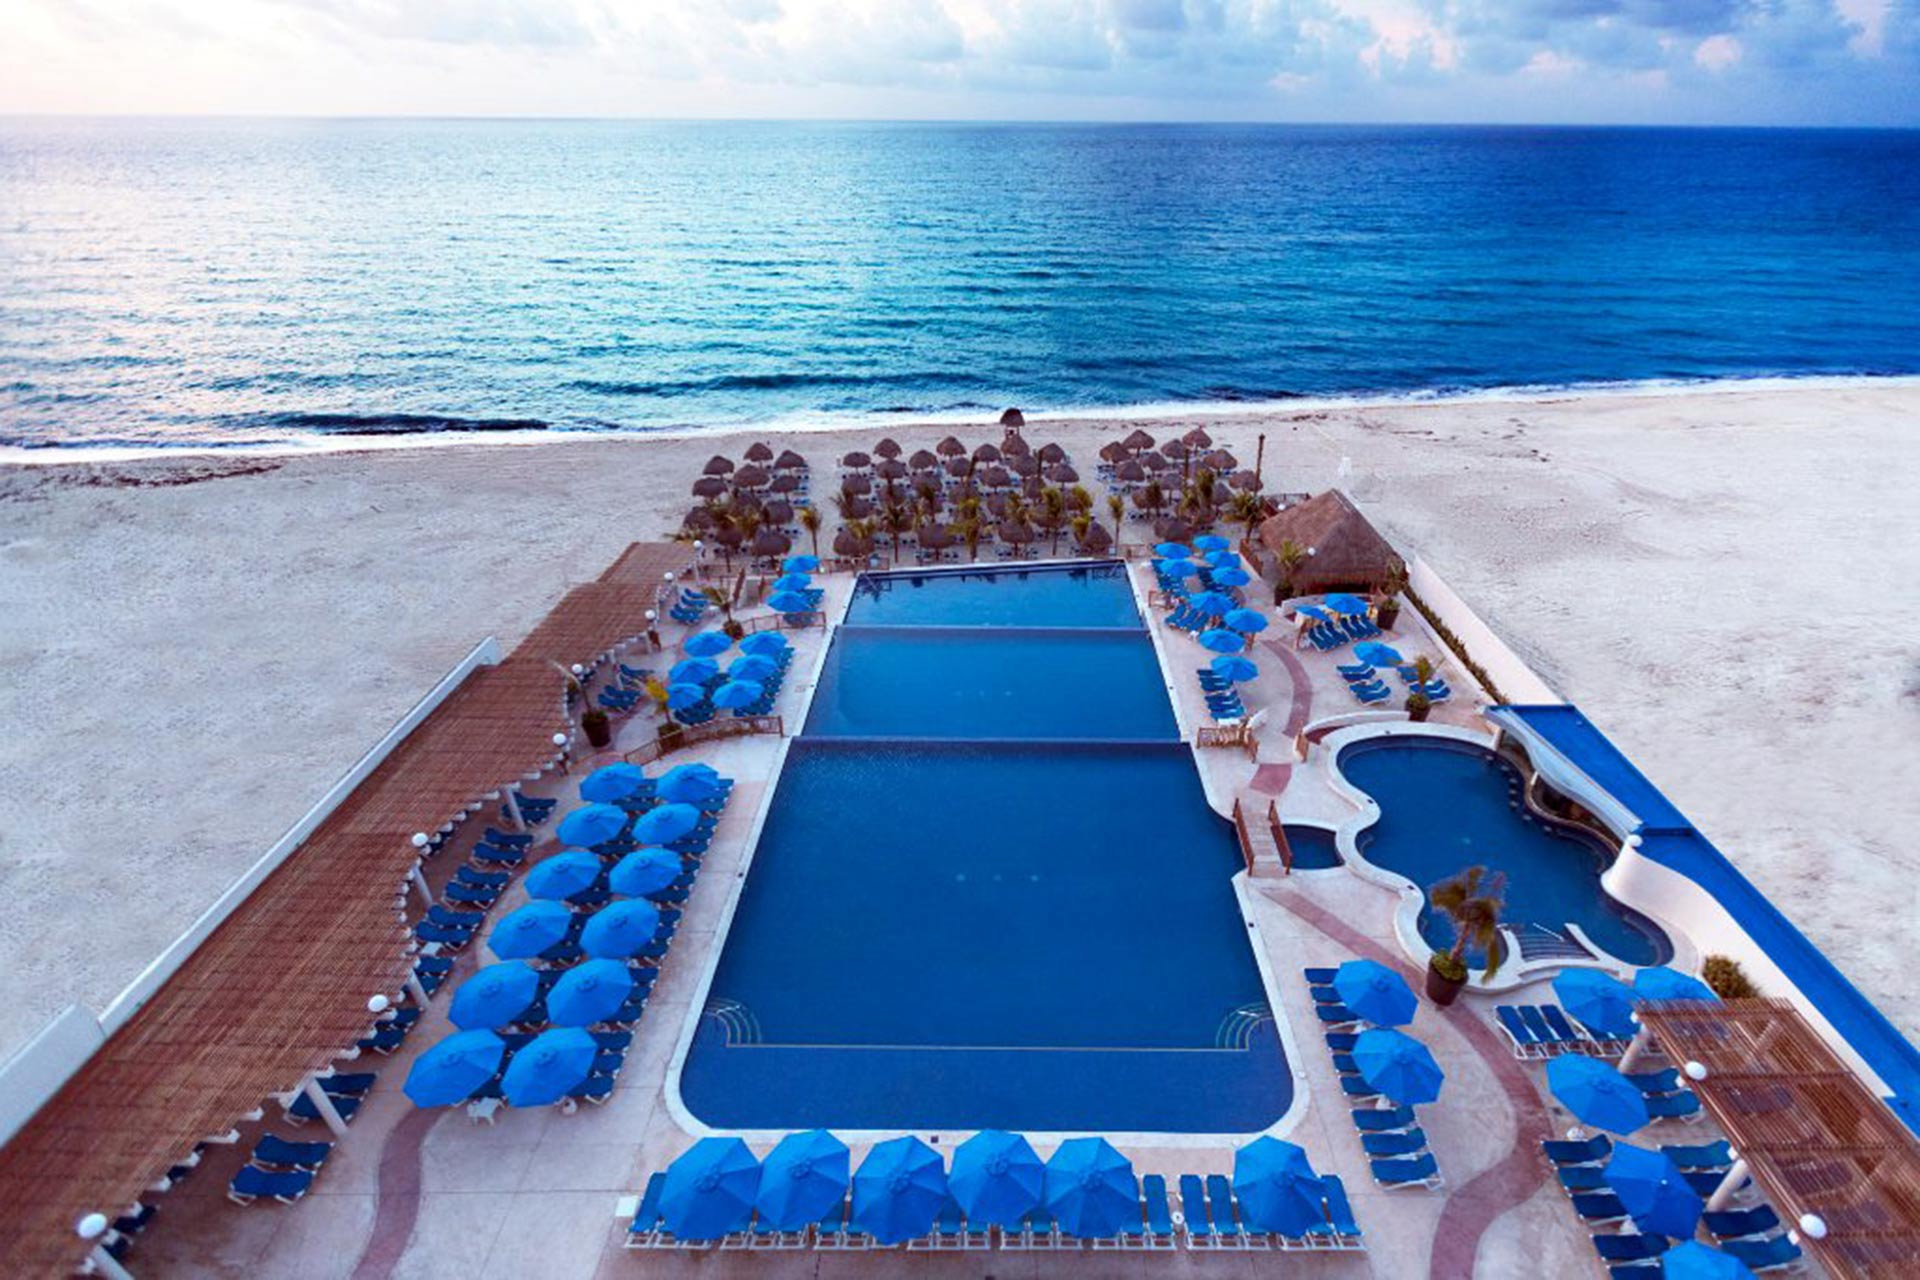 Pool and Ocean View at Seadust Cancun Family Resort - Cancun, MX - All Inclusive Resort